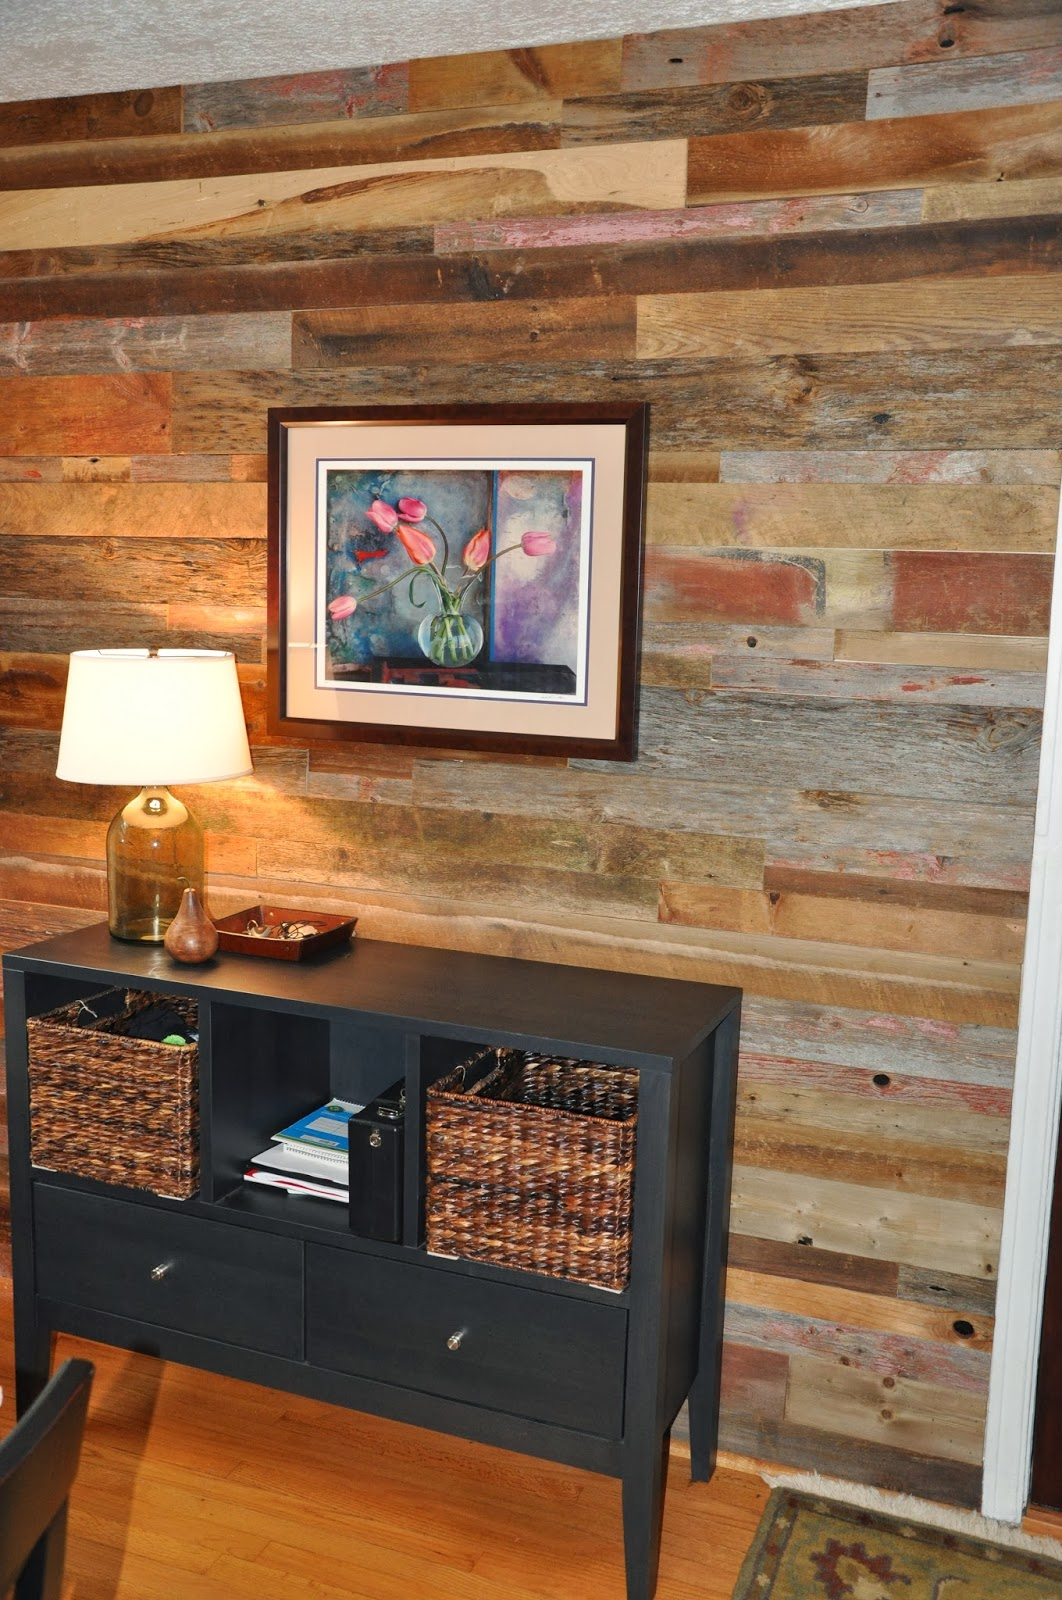 End Wall from Reclaimed Wood - Reclaimed Wood Chicago Gallery: Reclaimed Wood Vs Wall Paper